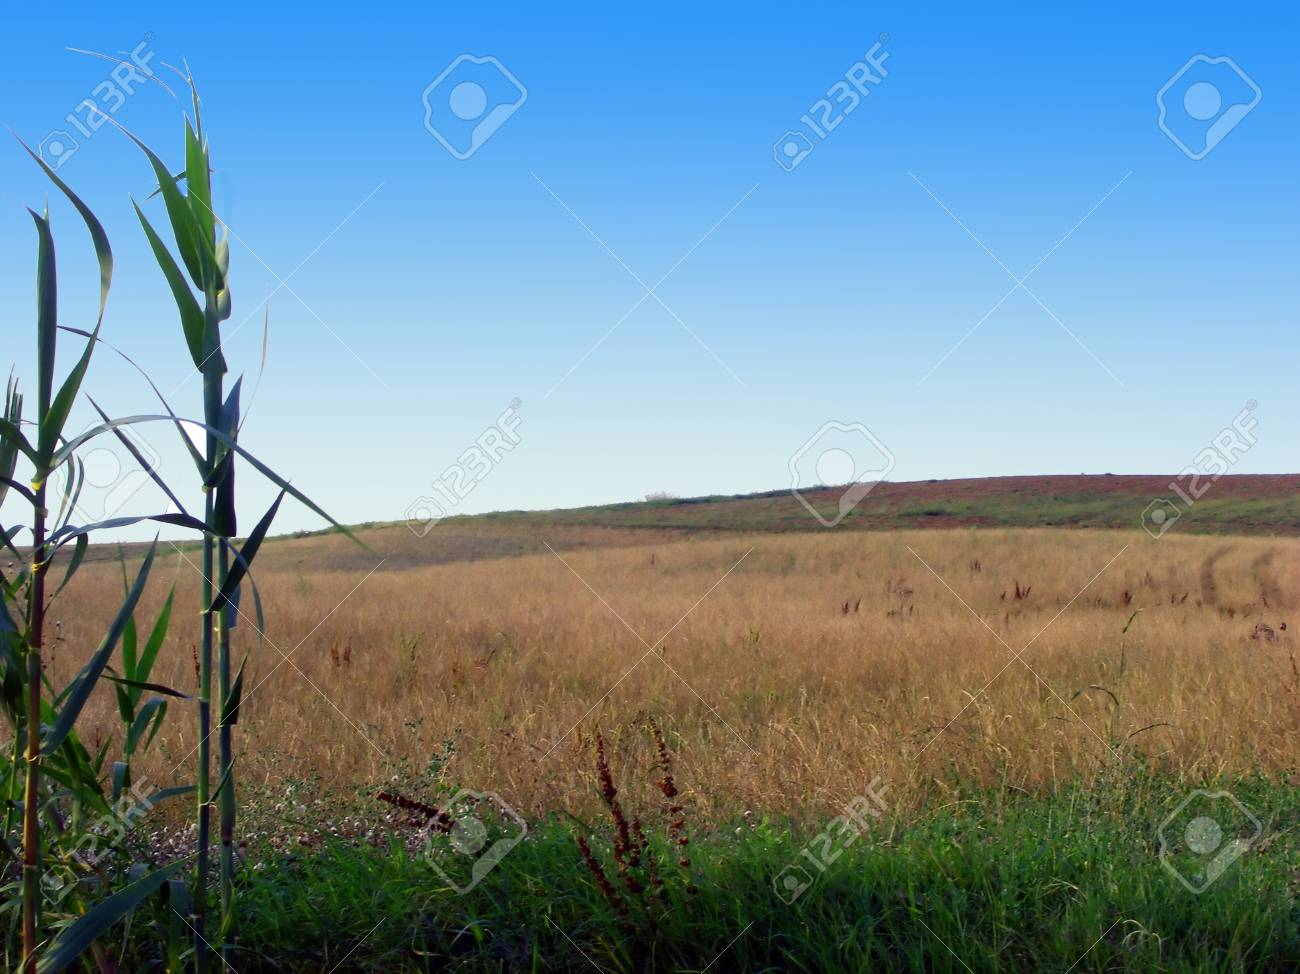 Wheat fields under a clear blue sky Stock Photo - 4301492